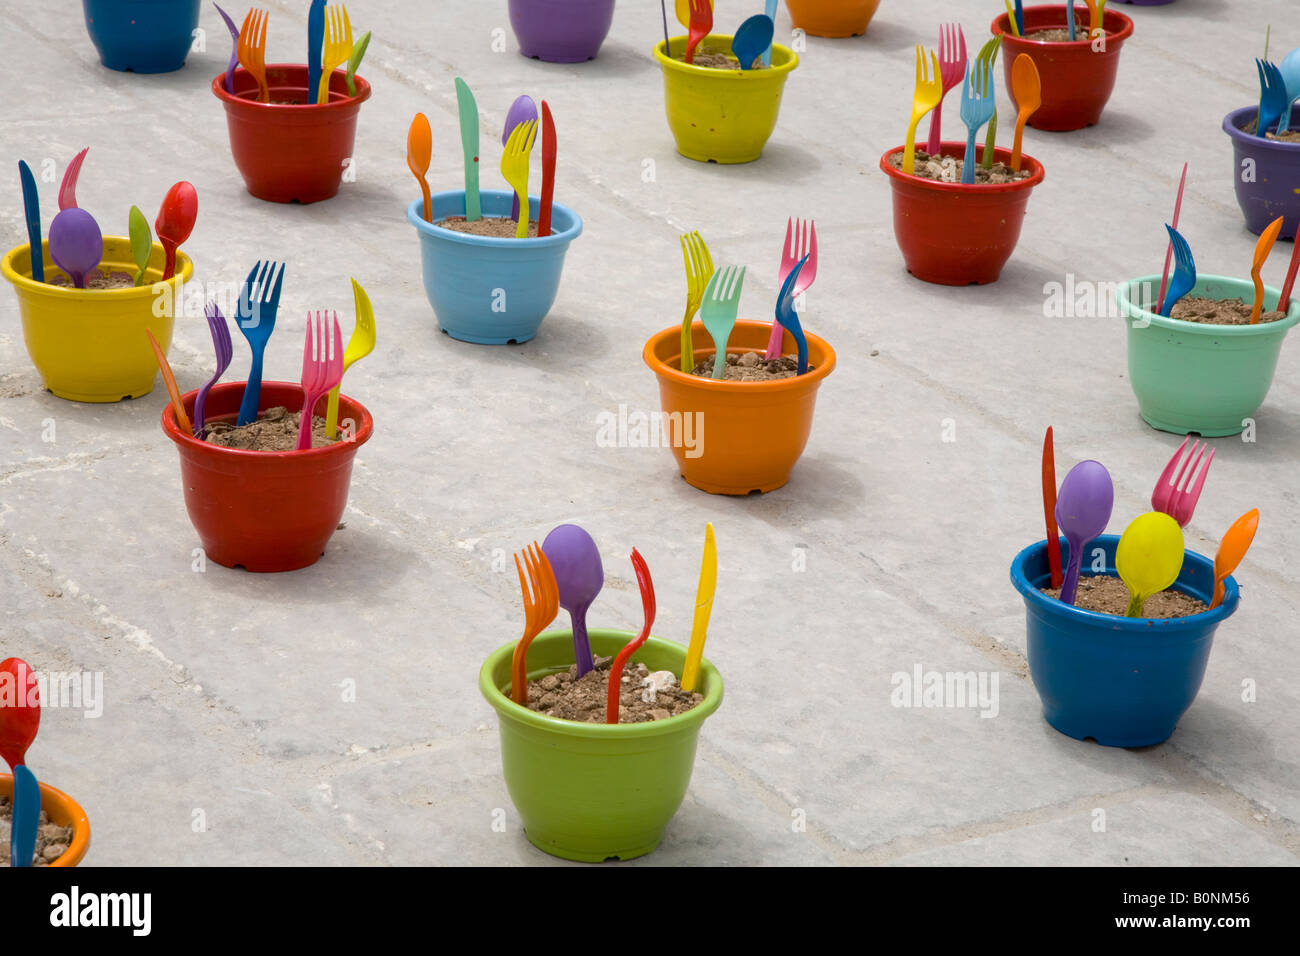 Plastic Tide, Forks, knives, spoons, a Fingers art product Installation Malta Earthgarden. - Stock Image